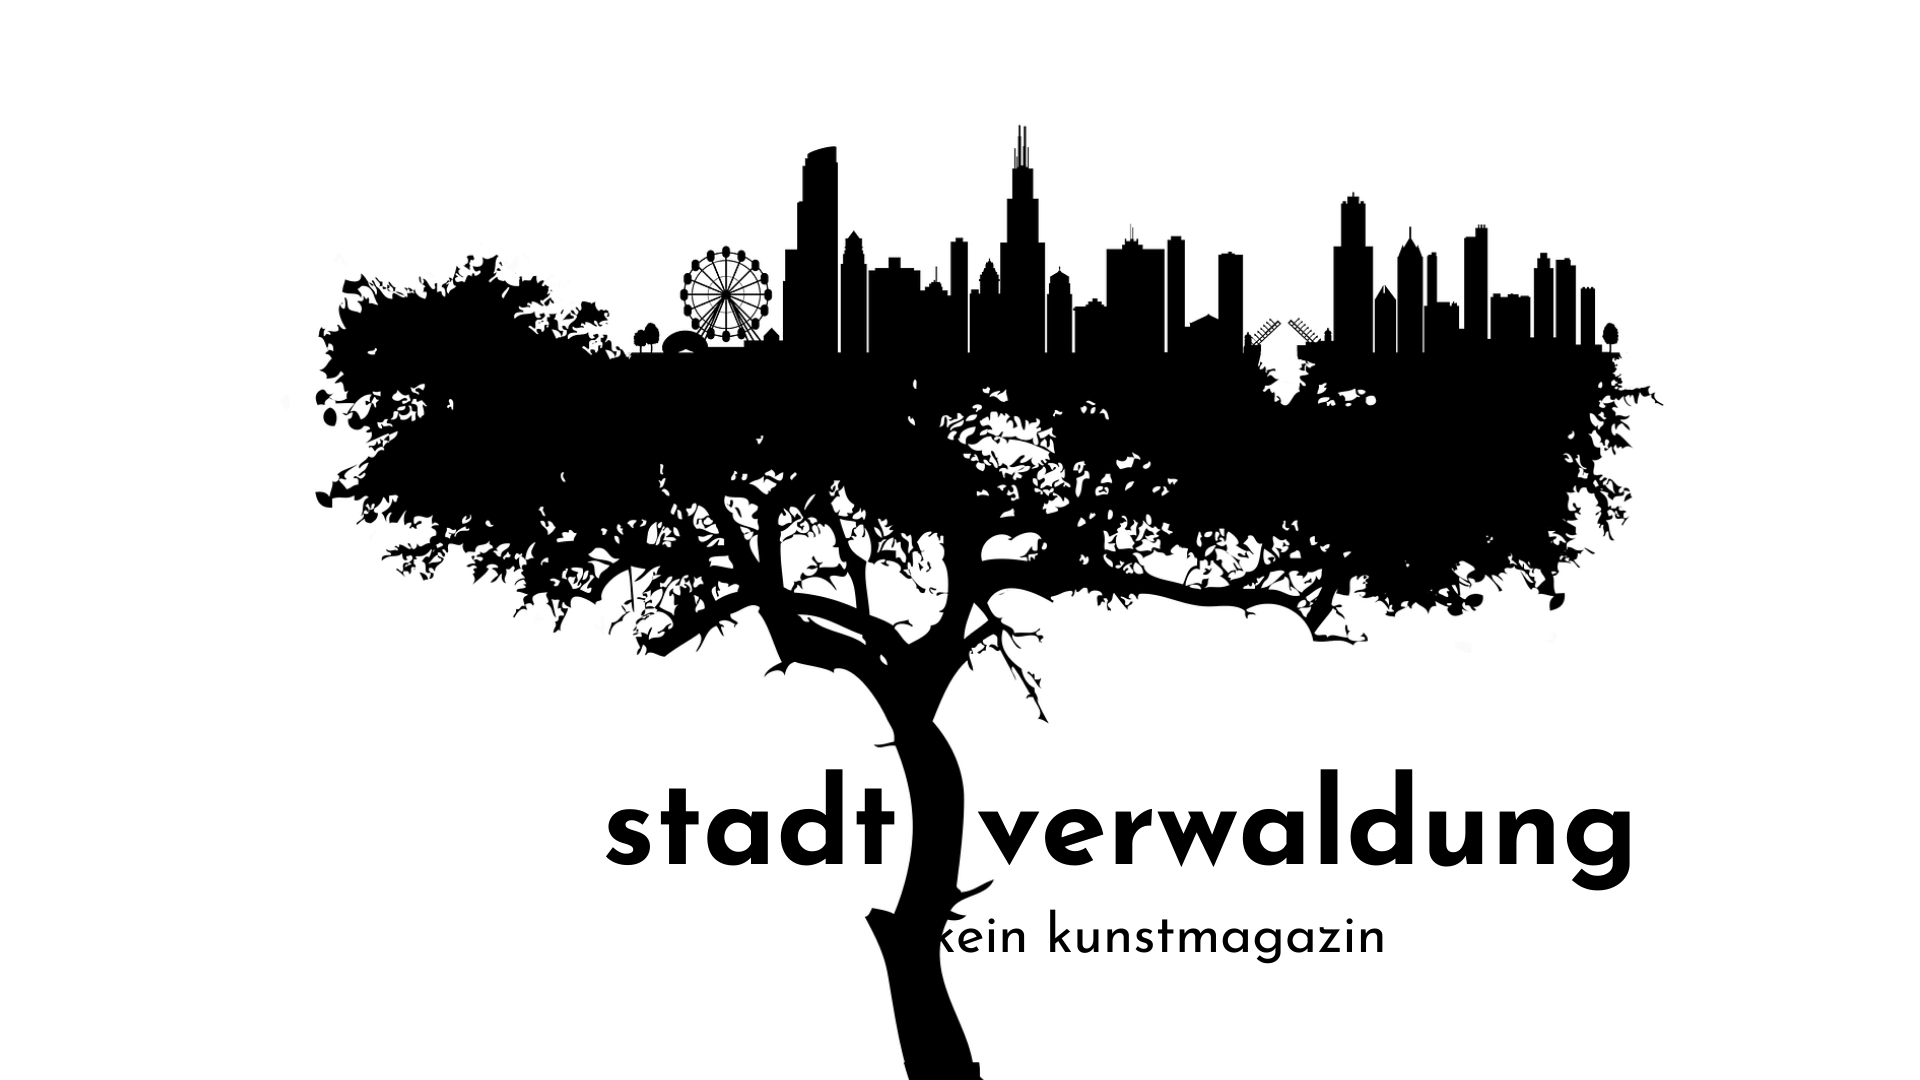 You are currently viewing Ruhe im Frieden   stadtverwaldung